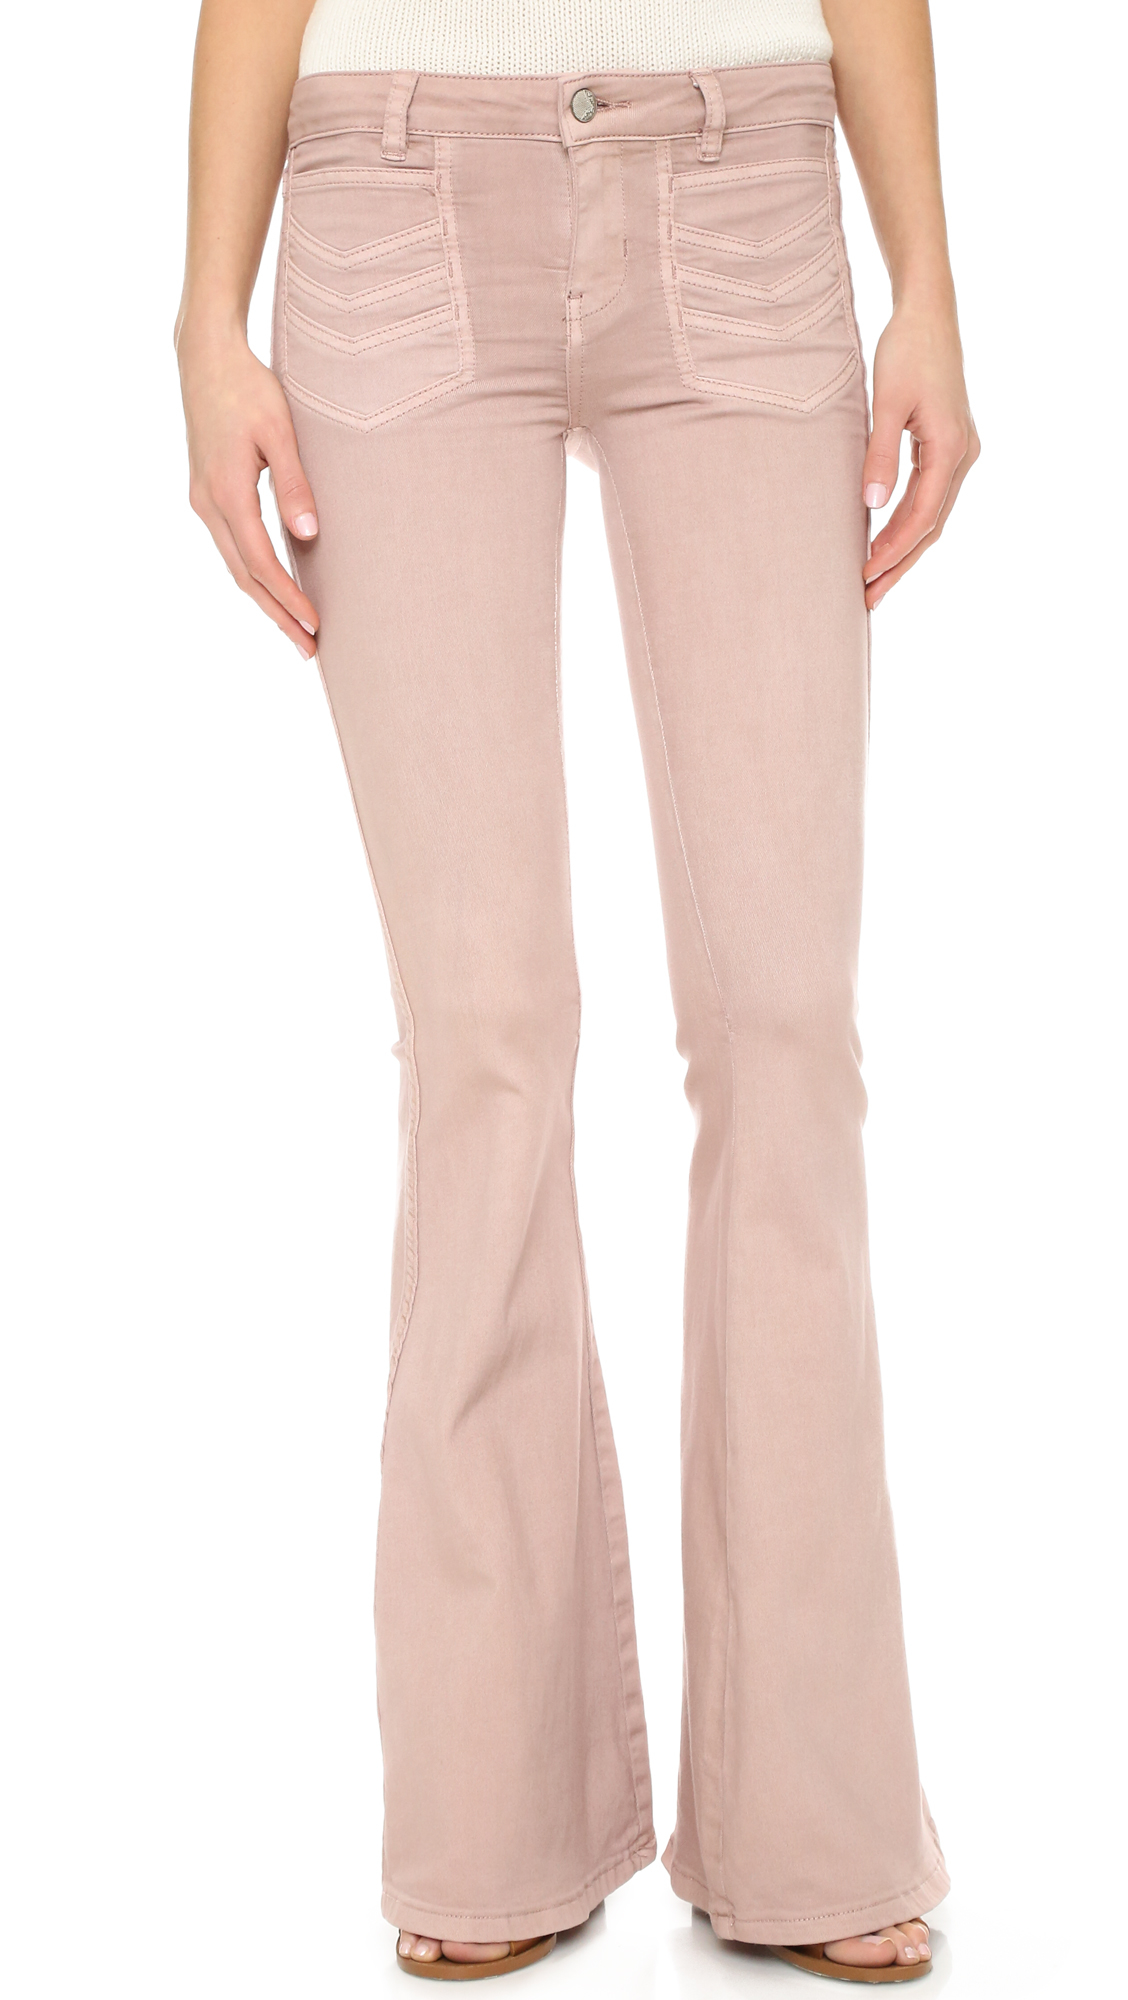 Free people Stella High Rise Flare Jeans in Pink | Lyst